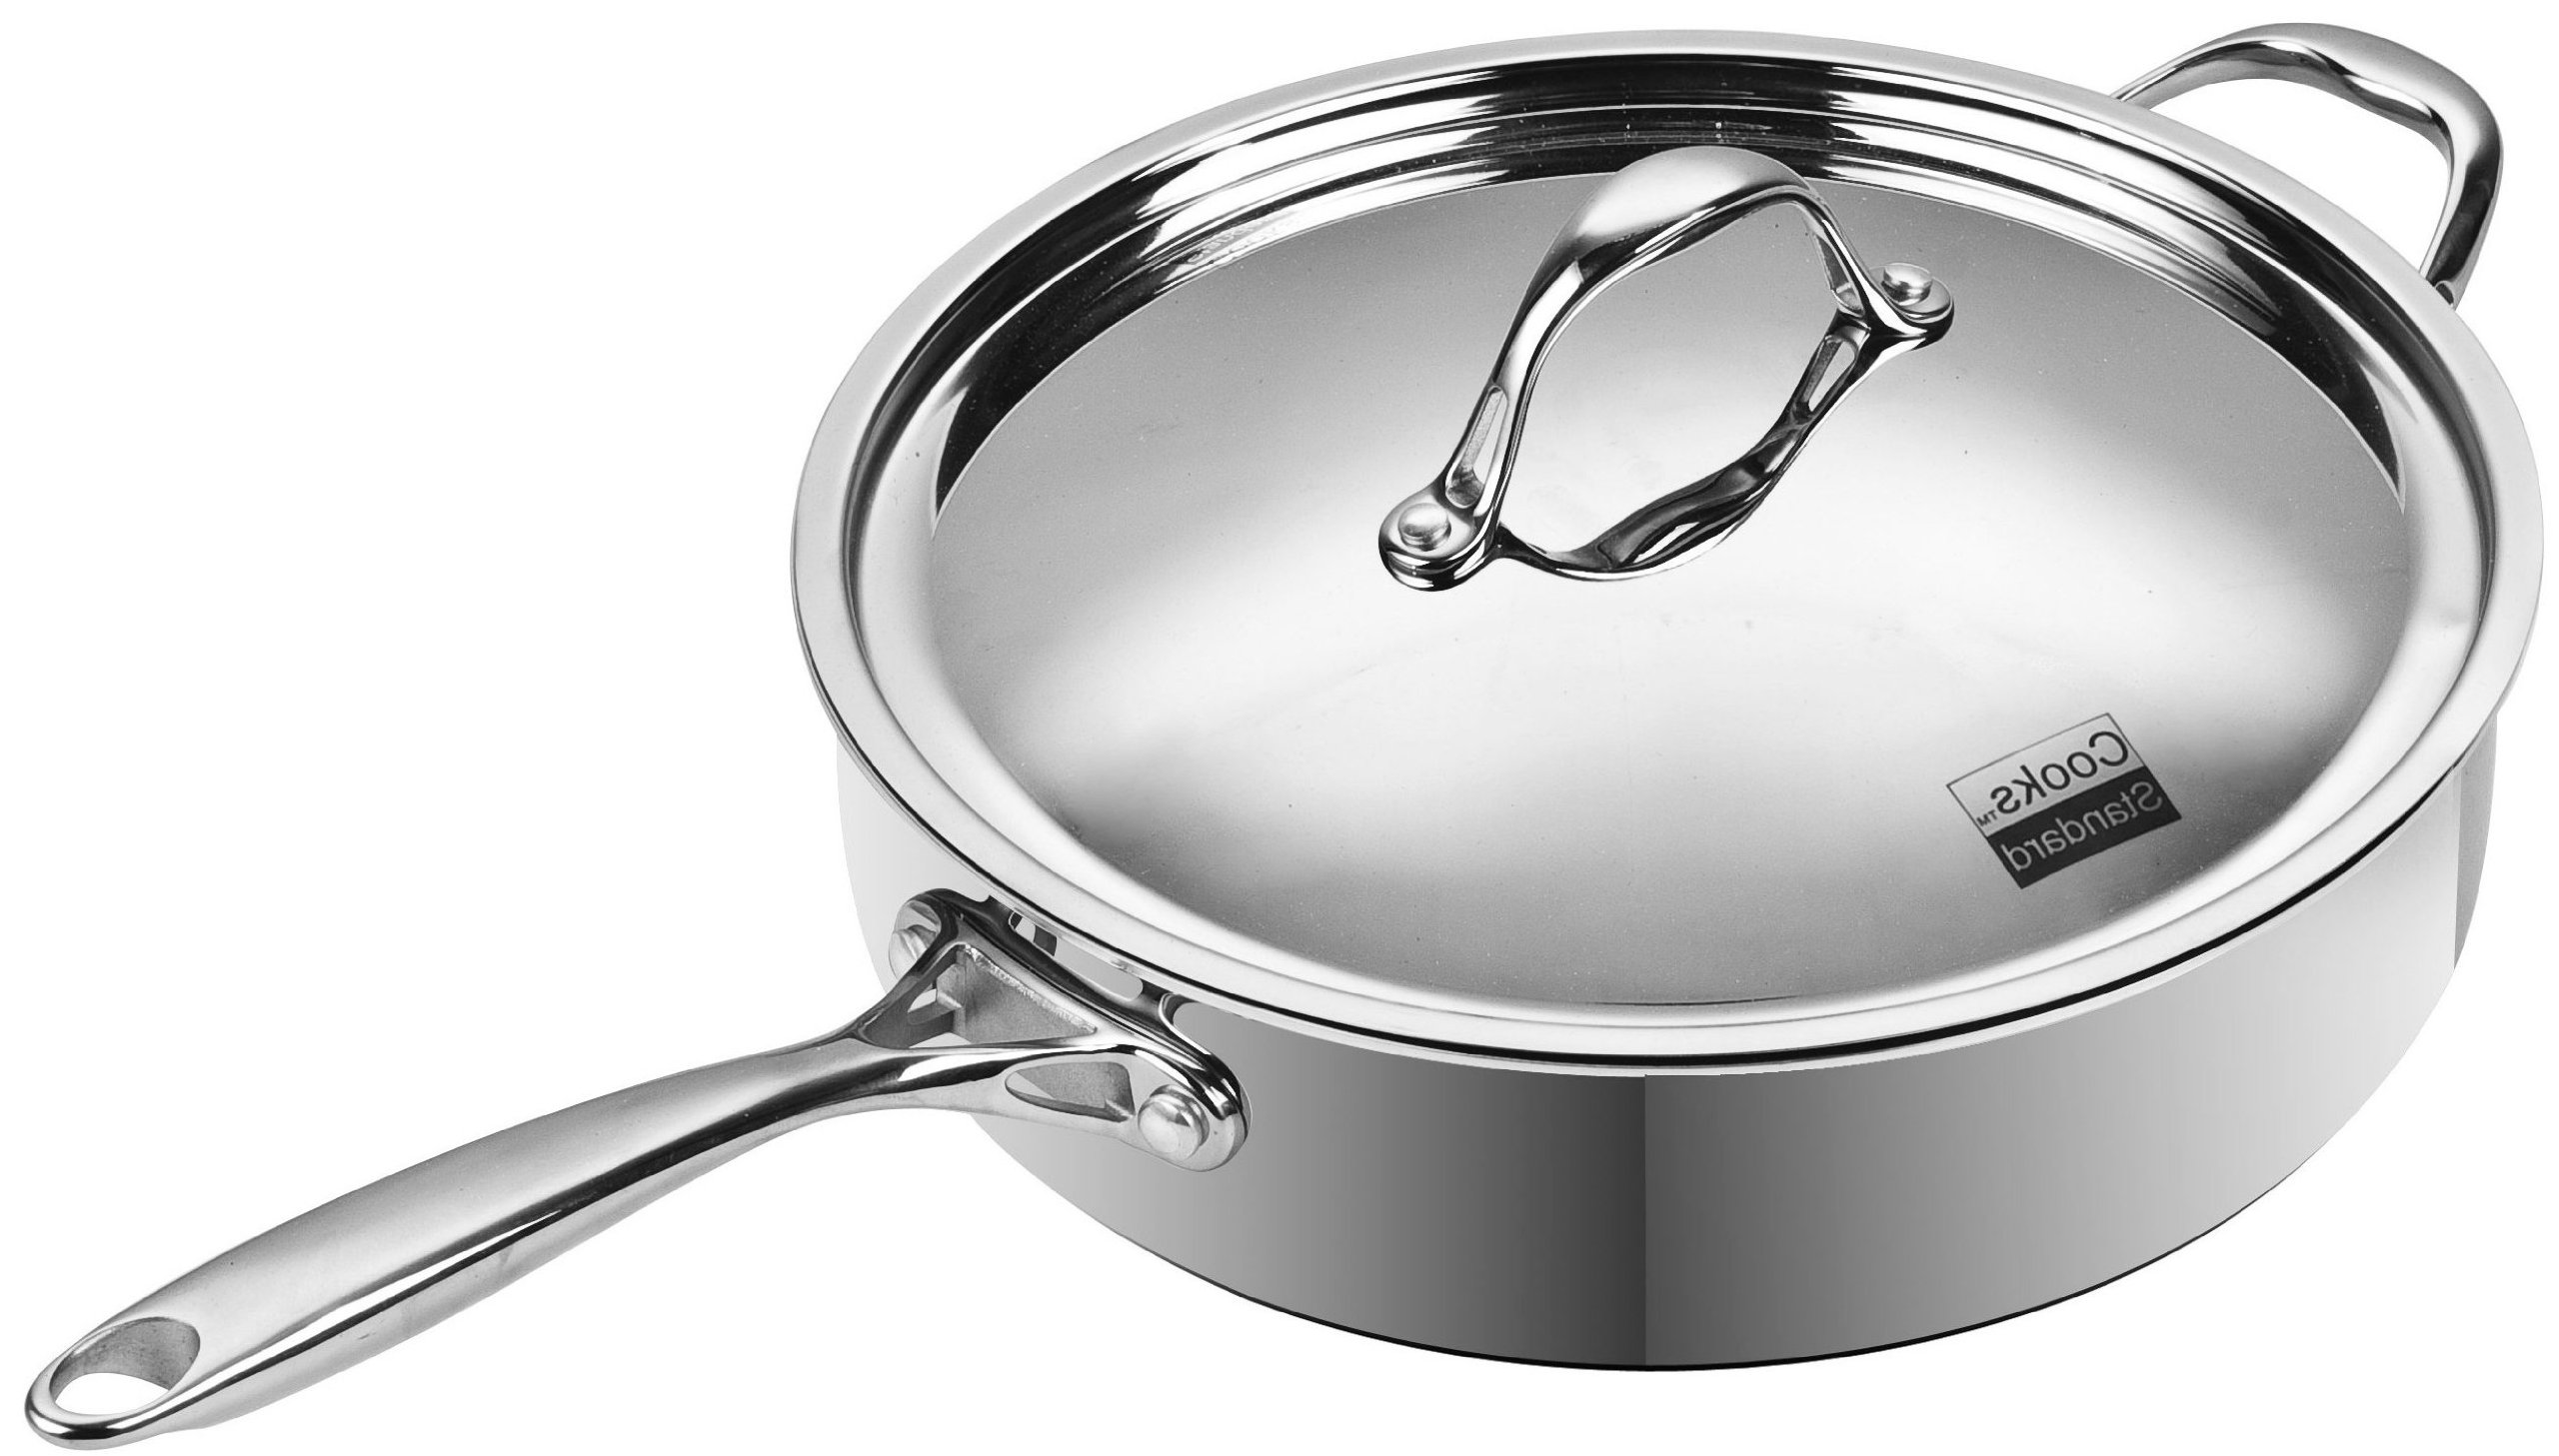 Cooks Standard 11-Inch/5 Quart Multi-Ply Clad Deep Saute Pan with Lid, Stainless Steel by Cooks Standard